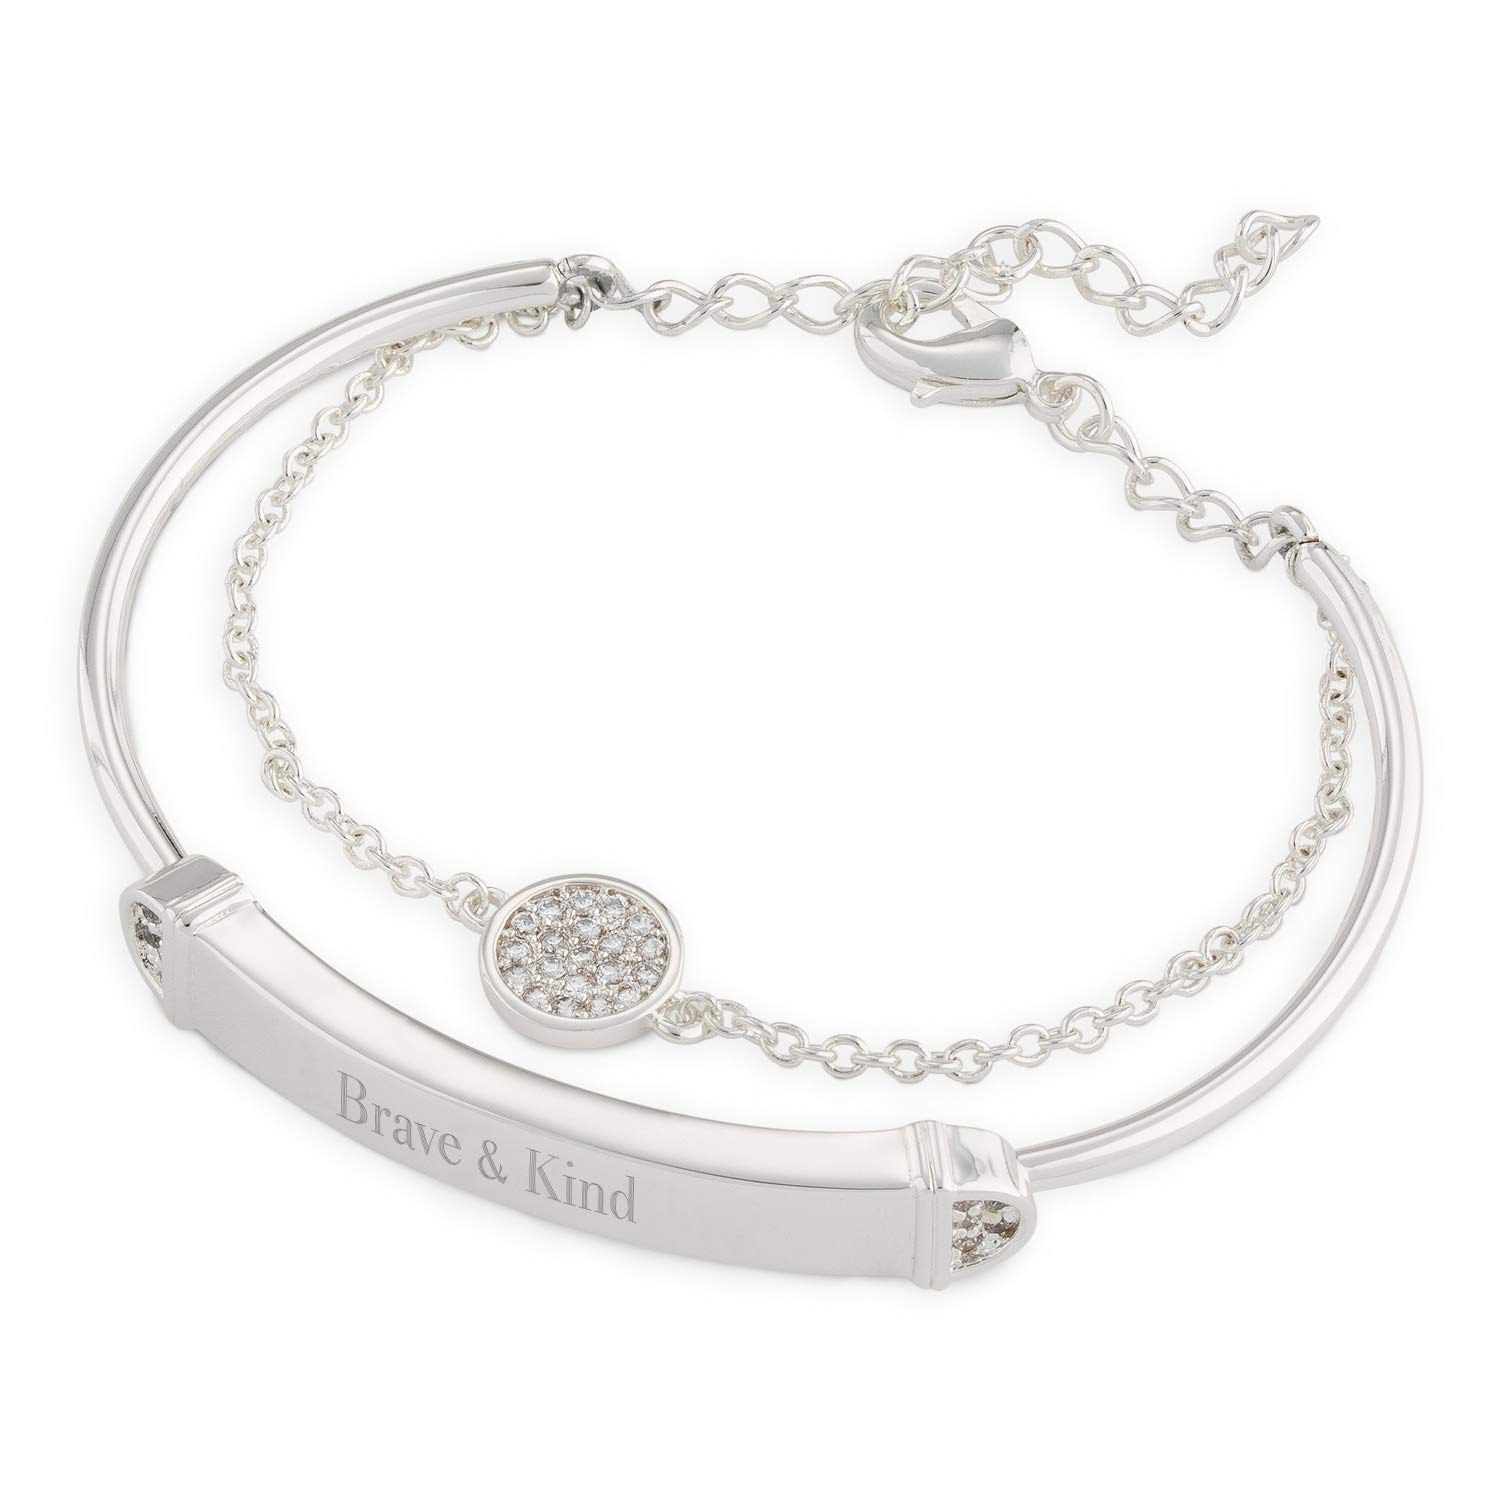 Things Remembered Personalized Silver Tone Double Strand Pave ID Bracelet with Engraving Included